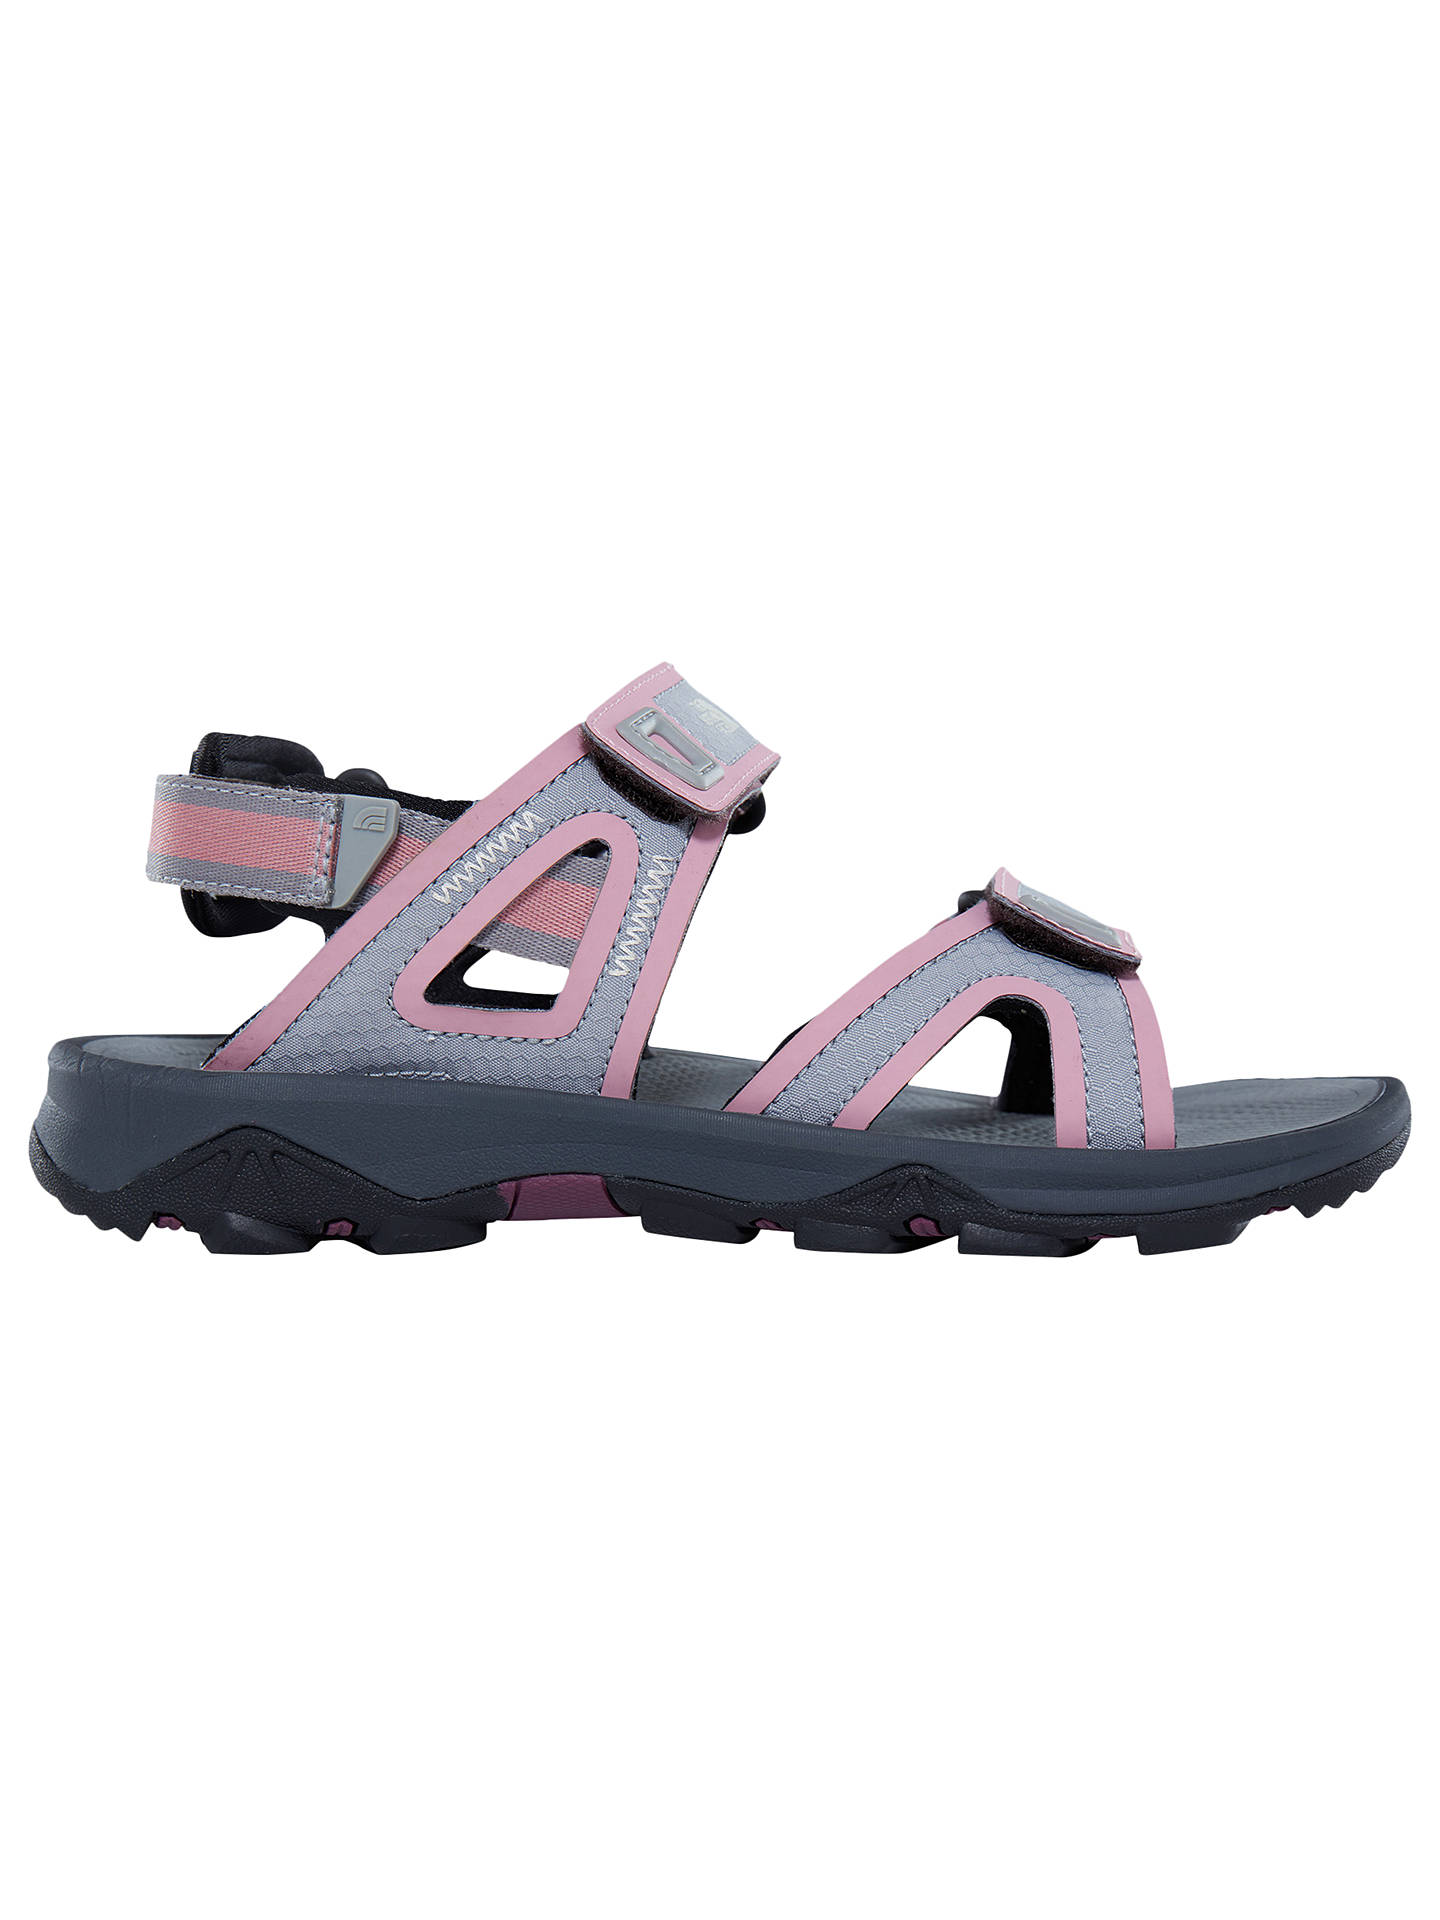 01c952318 The North Face Hedgehog II Women's Sandals, Griffin Grey at John ...